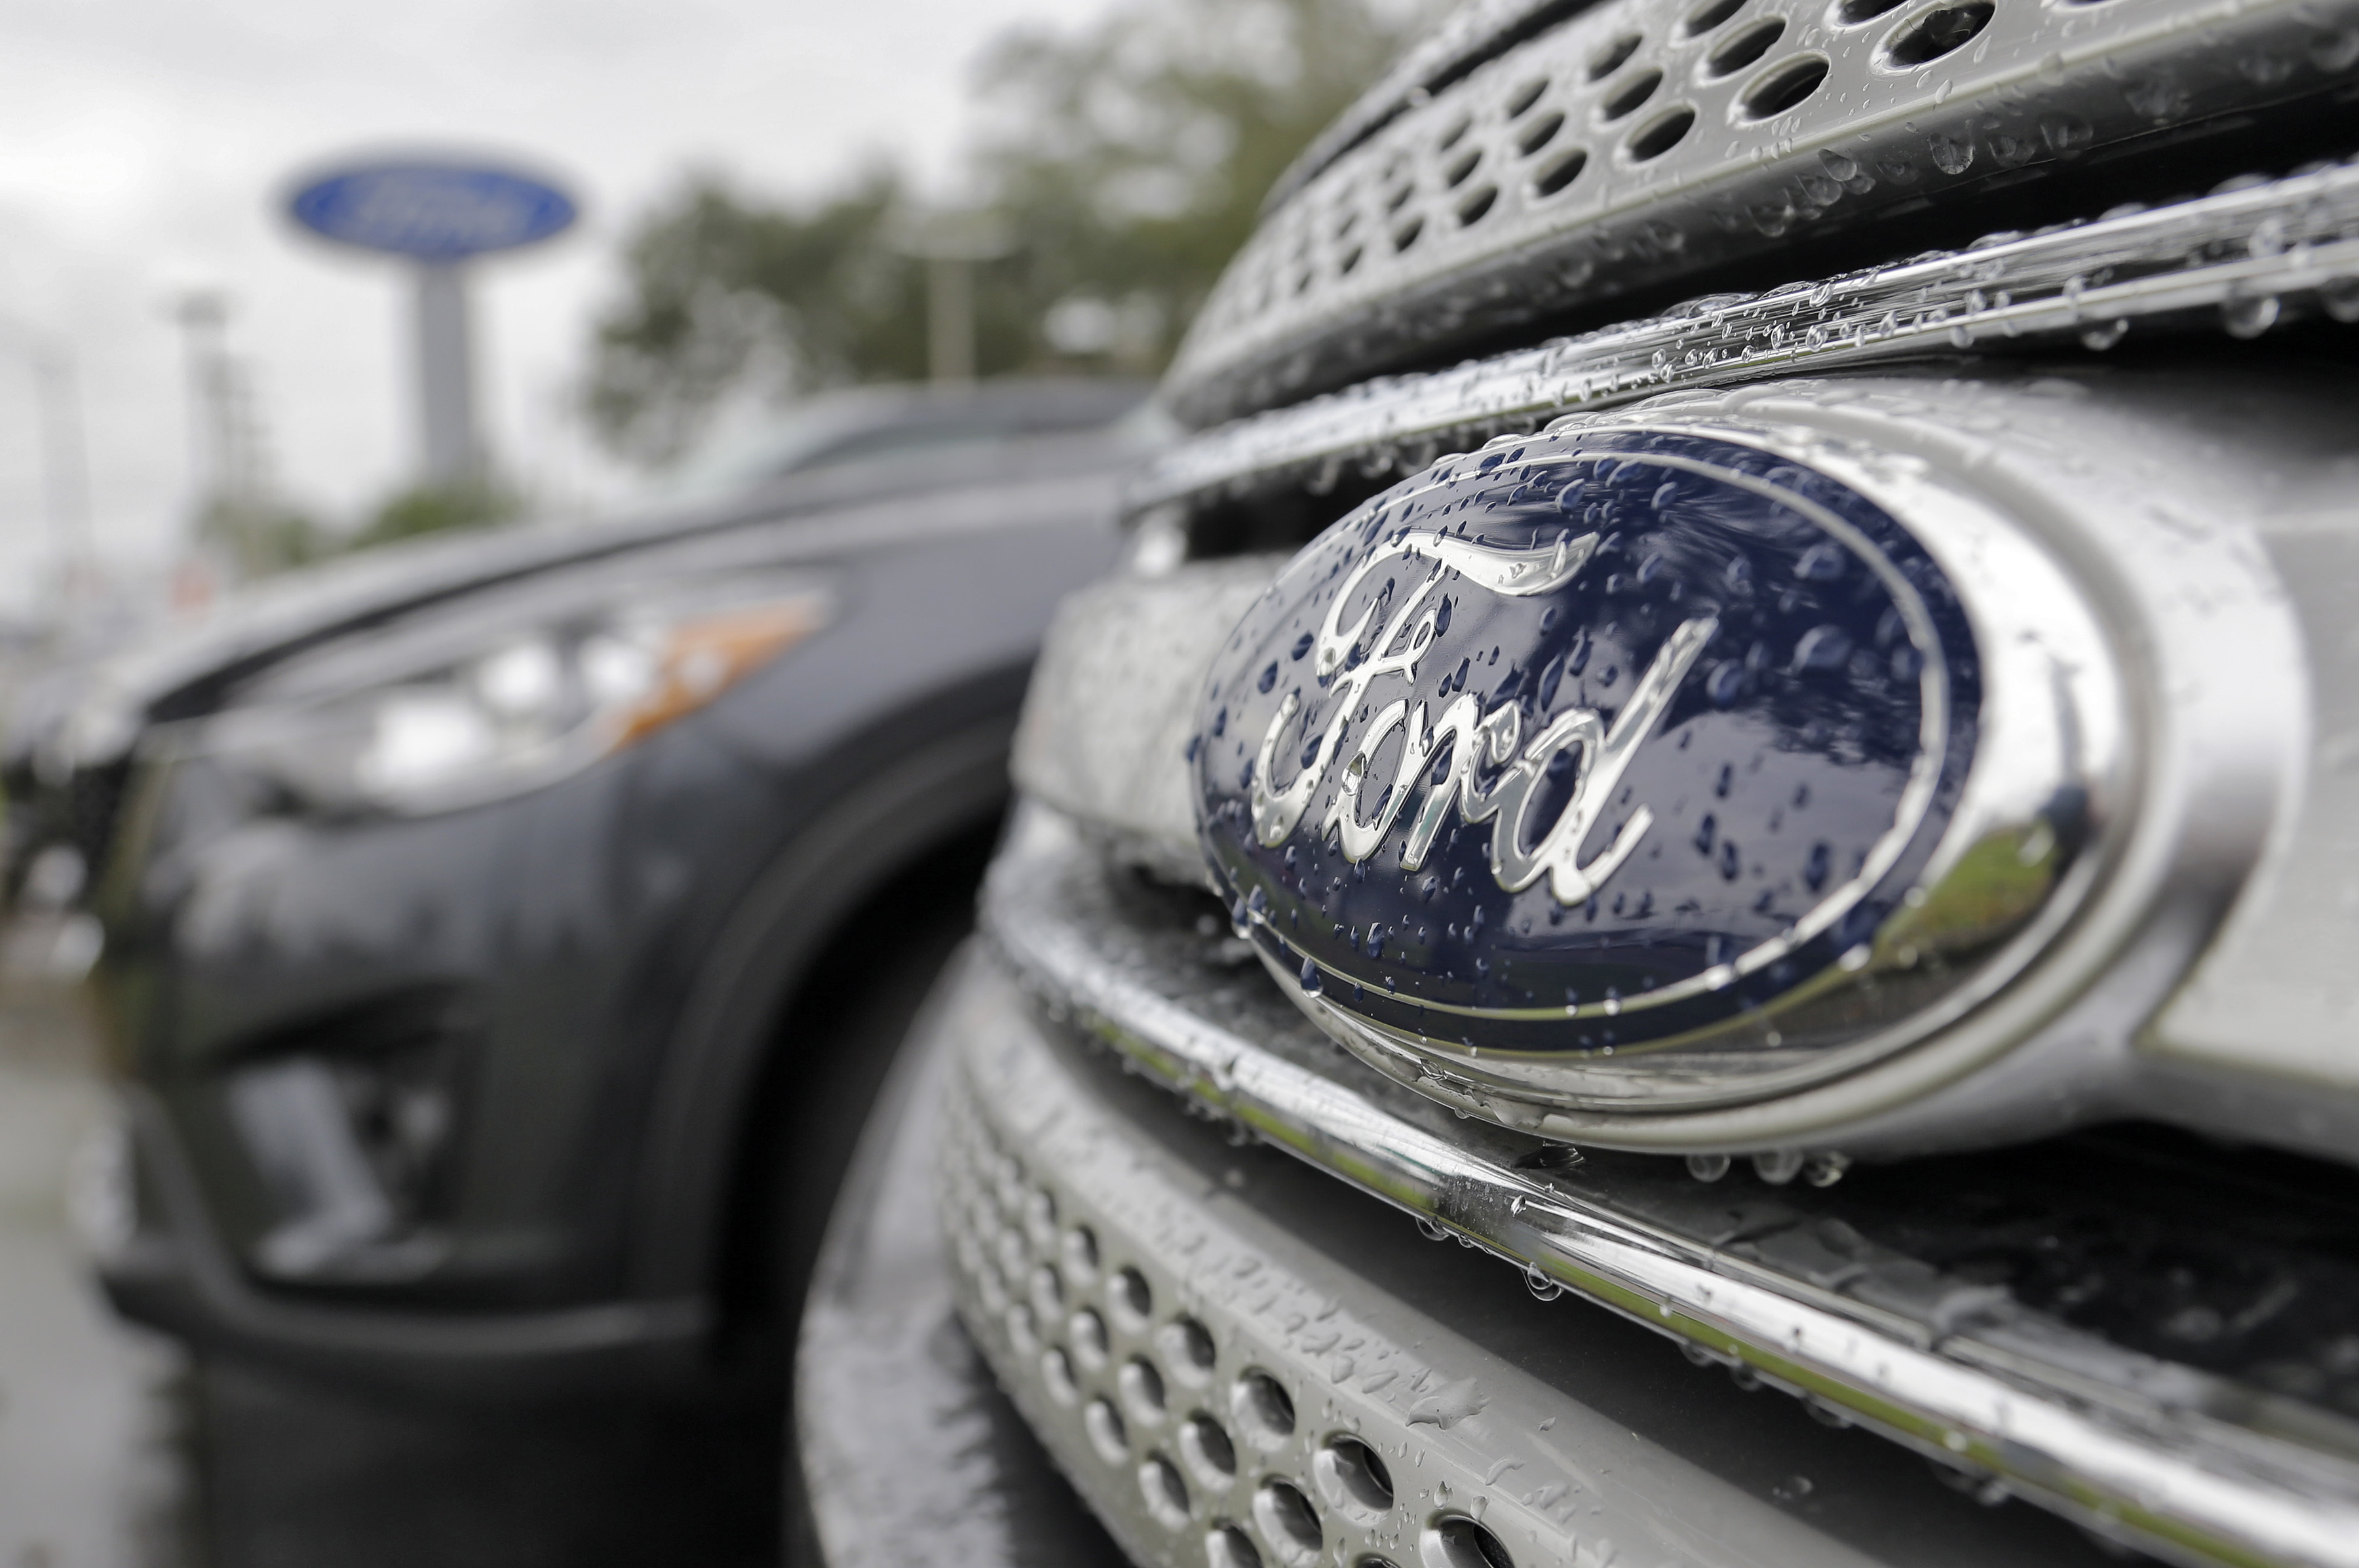 FILE - In this Jan. 12, 2015, file photo, Ford vehicles sit on the lot at a car dealership, in Brandon, Fla. Ford Motor Co. expects its pretax profit to fall in 2017 but improve in 2018 as it invests in emerging businesses. Ford updated its outlook Wednesday, Sept. 14, 2016, at its annual investor day. (AP Photo/Chris O'Meara, File)